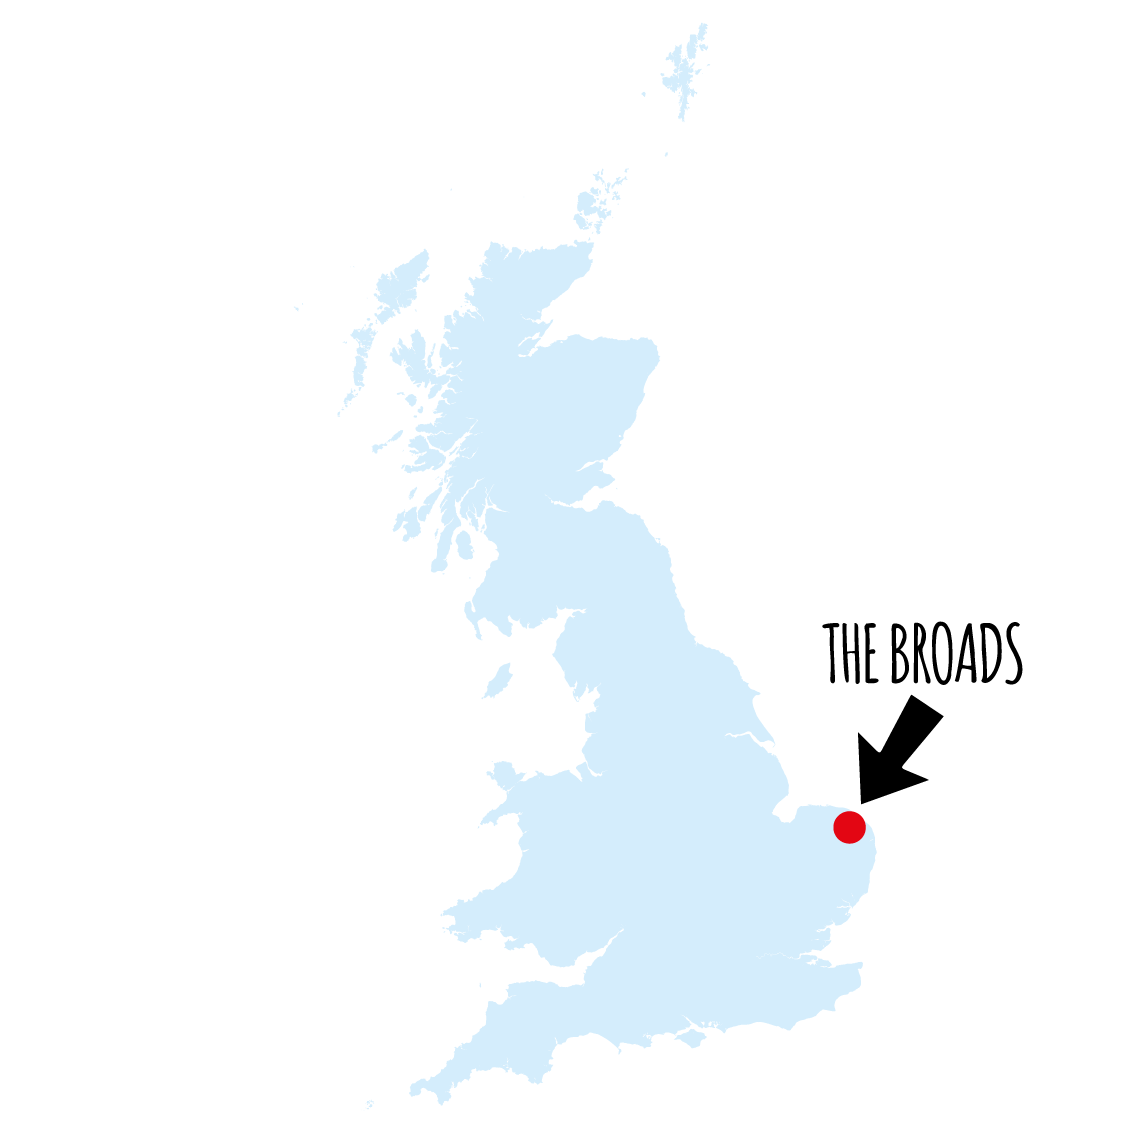 the-broads-map.png